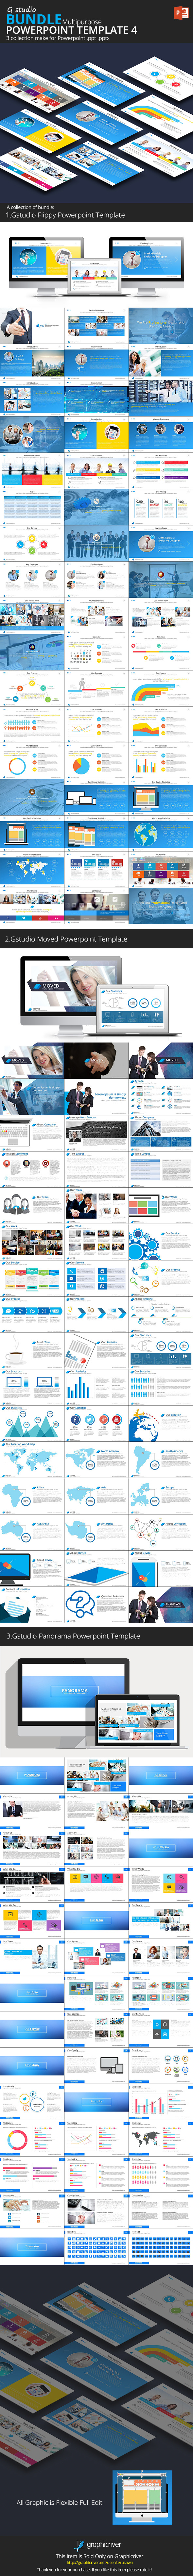 Gstudio Powerpoint Bundle 4 - Business PowerPoint Templates